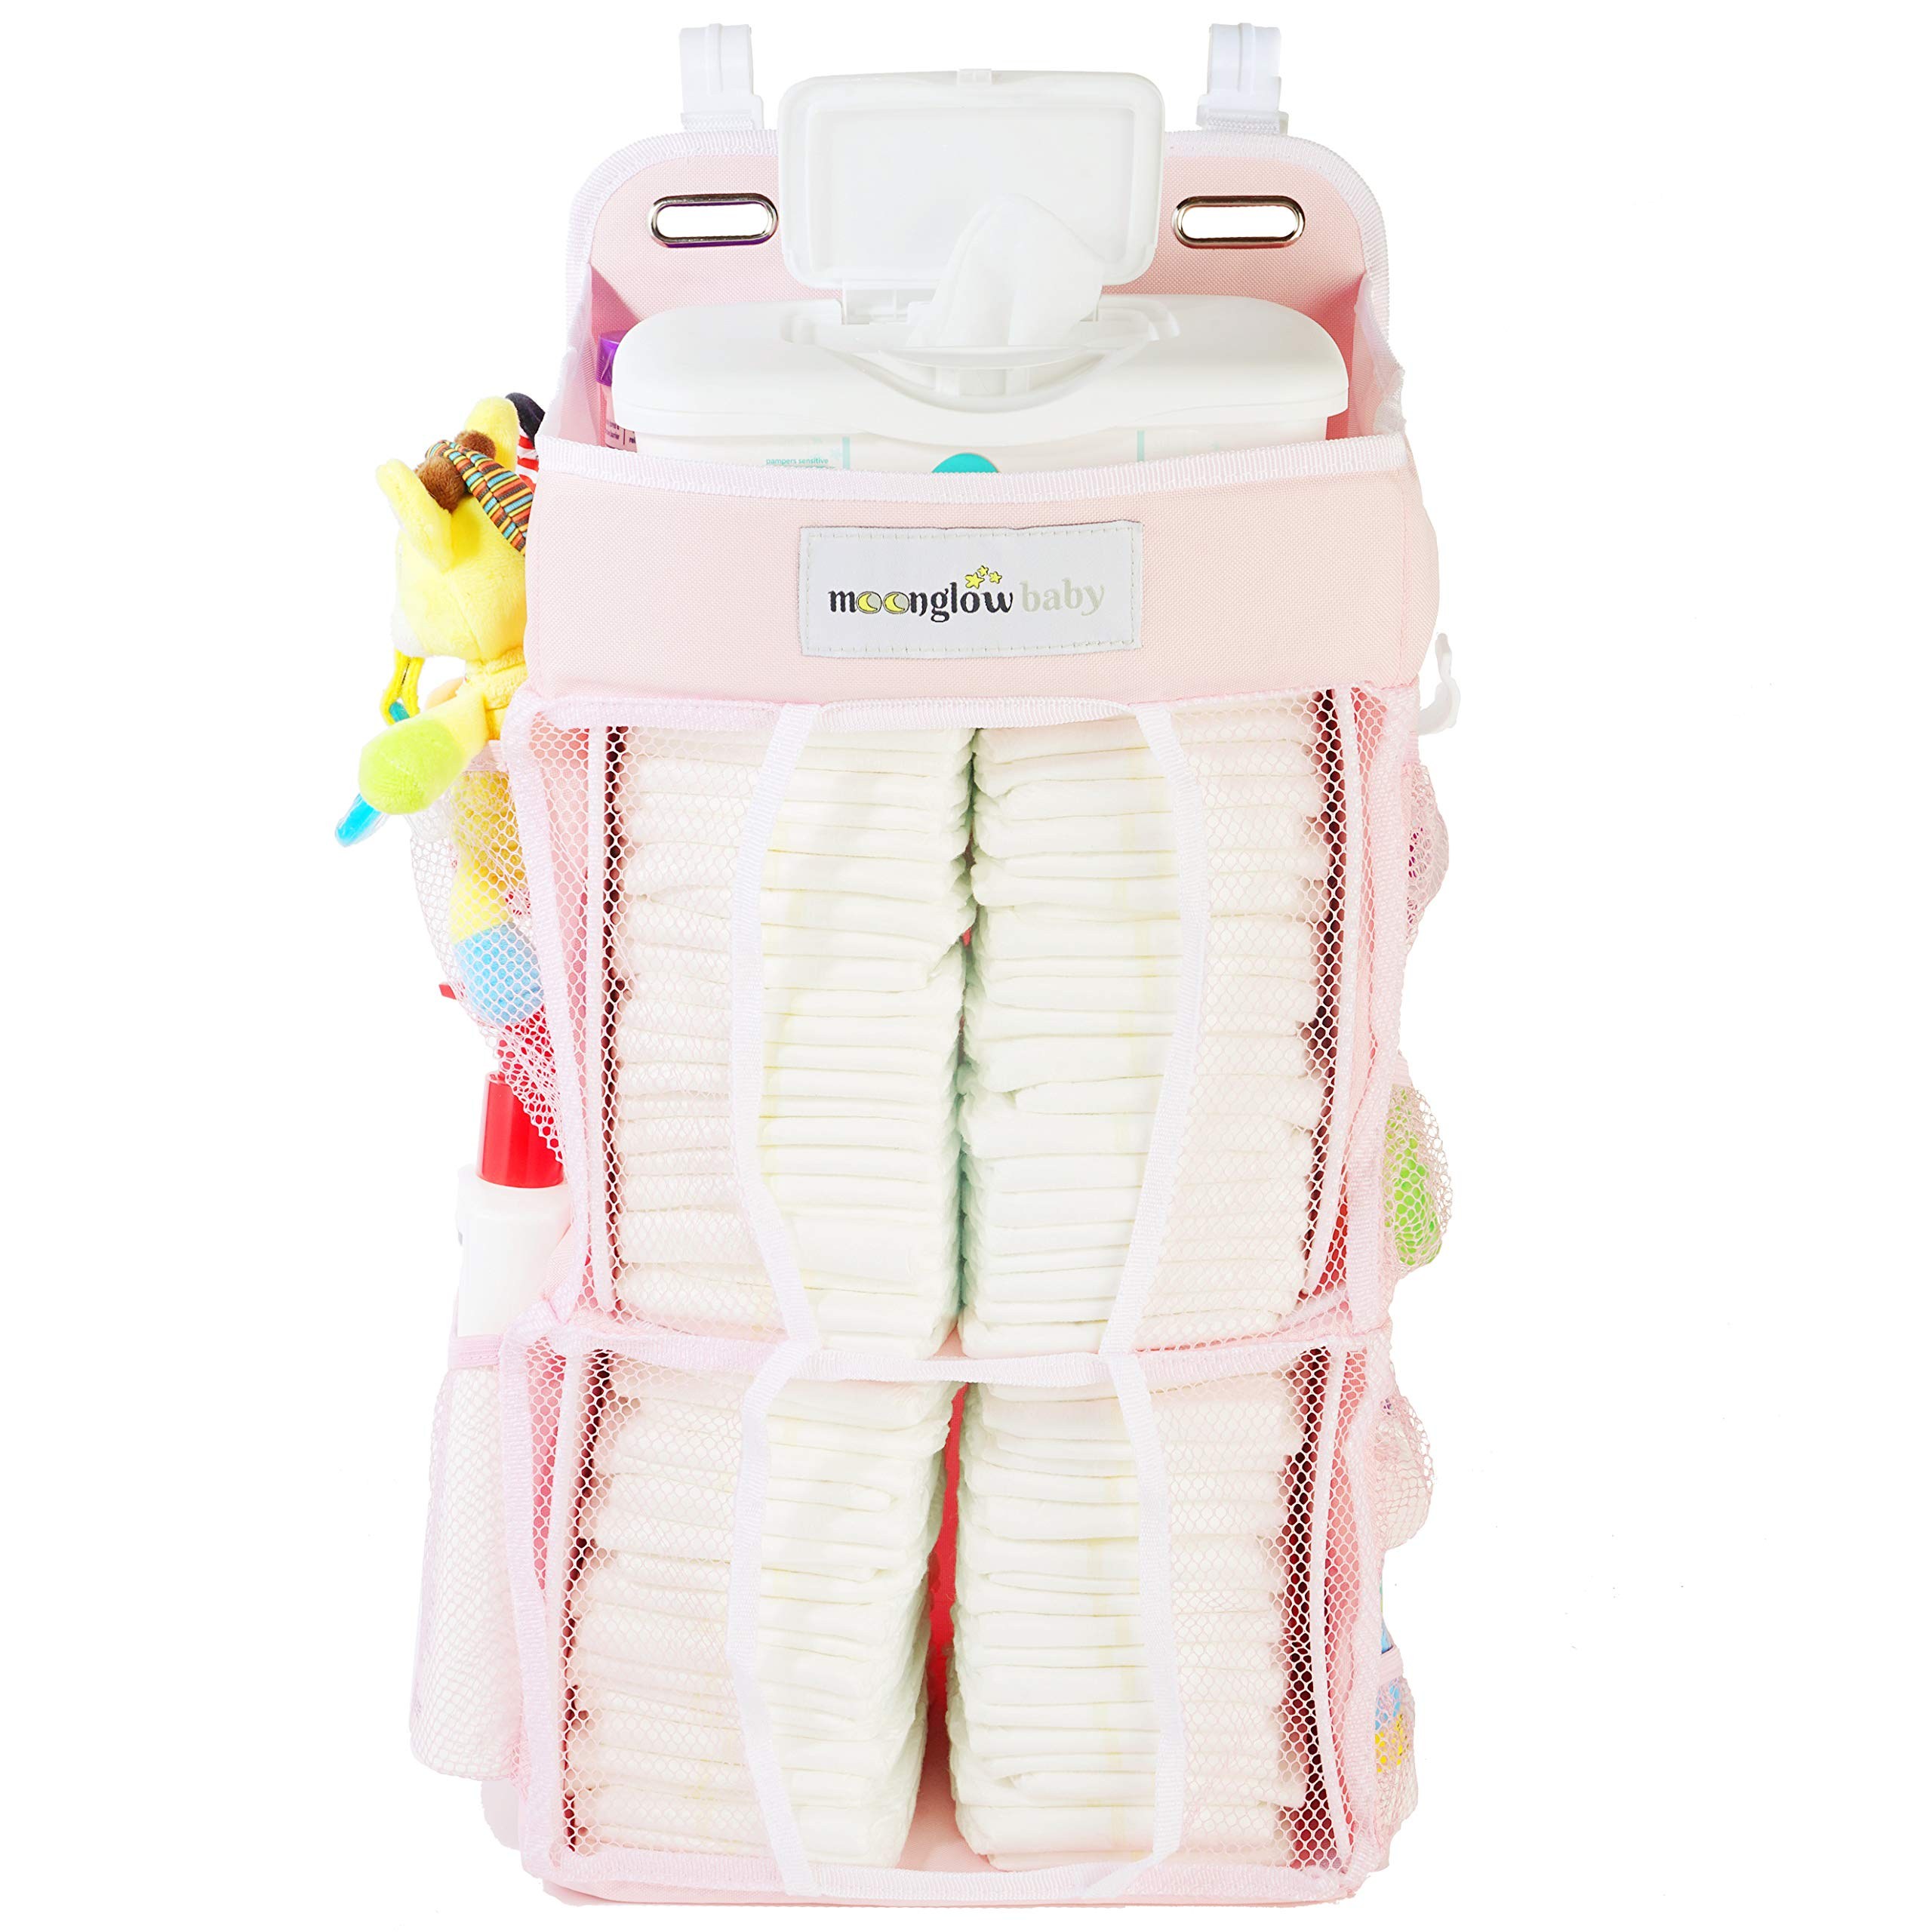 {Improved Model} Nursery Diaper Organizer (Now w/Double The Diaper Storage) | Baby Essentials Caddy and Hanging Organizer | Attaches to Crib, Playard, or Changing Table (Pink)